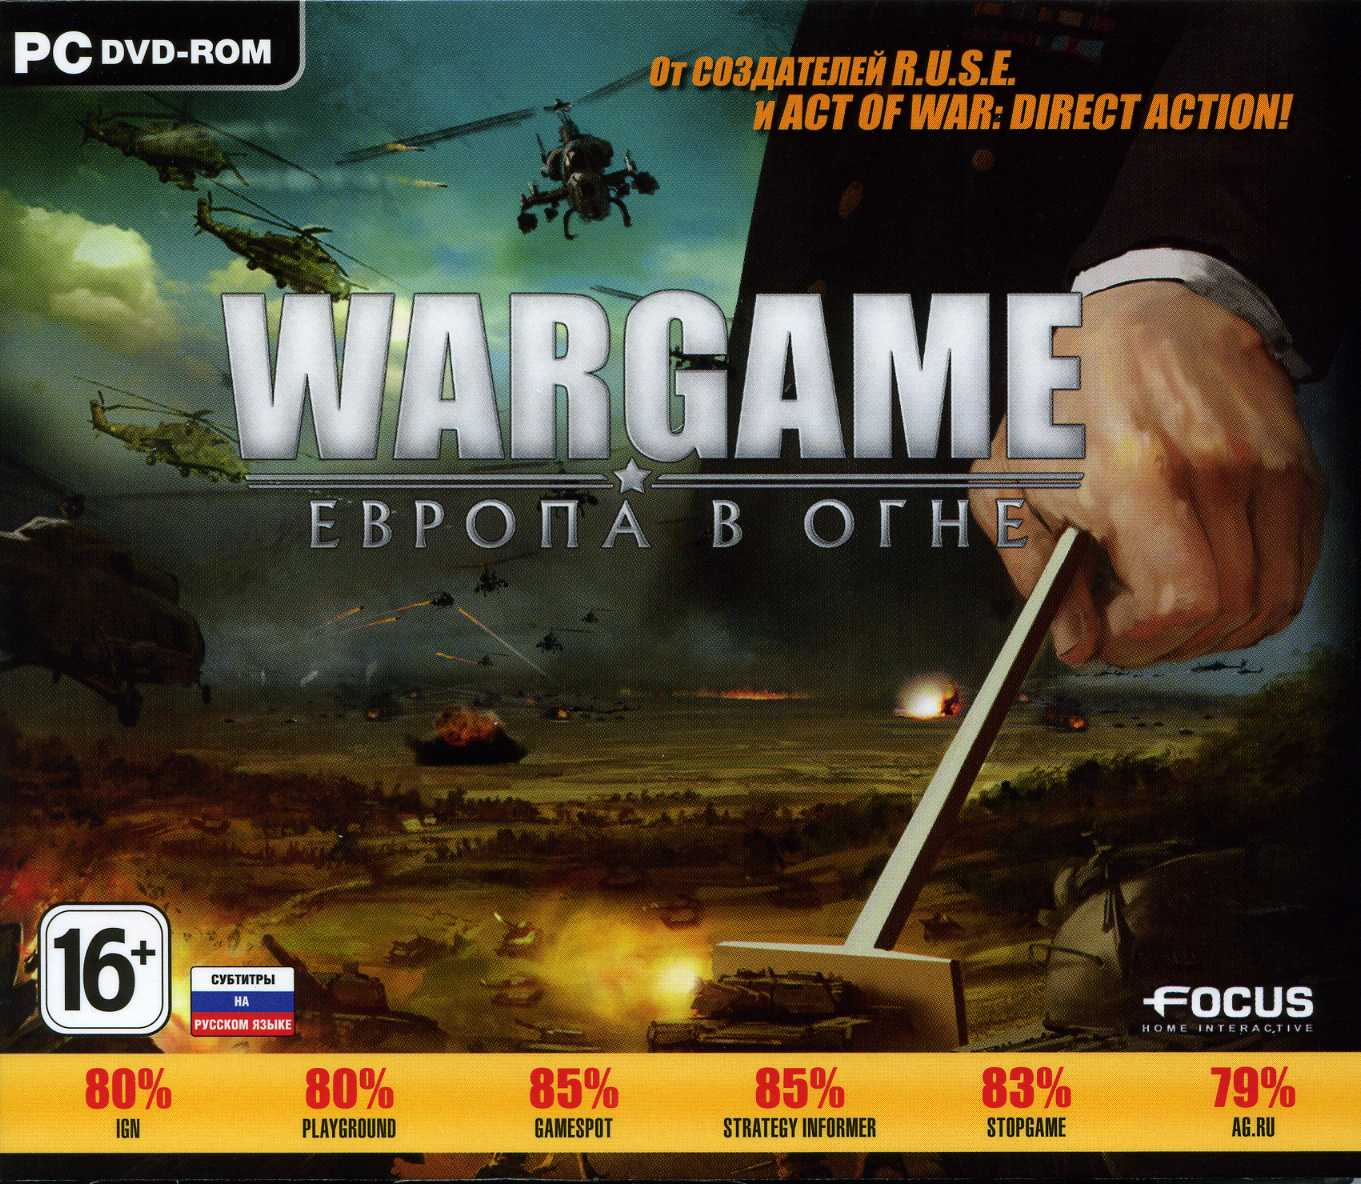 Wargame: Europe is on fire (activation key in Steam)